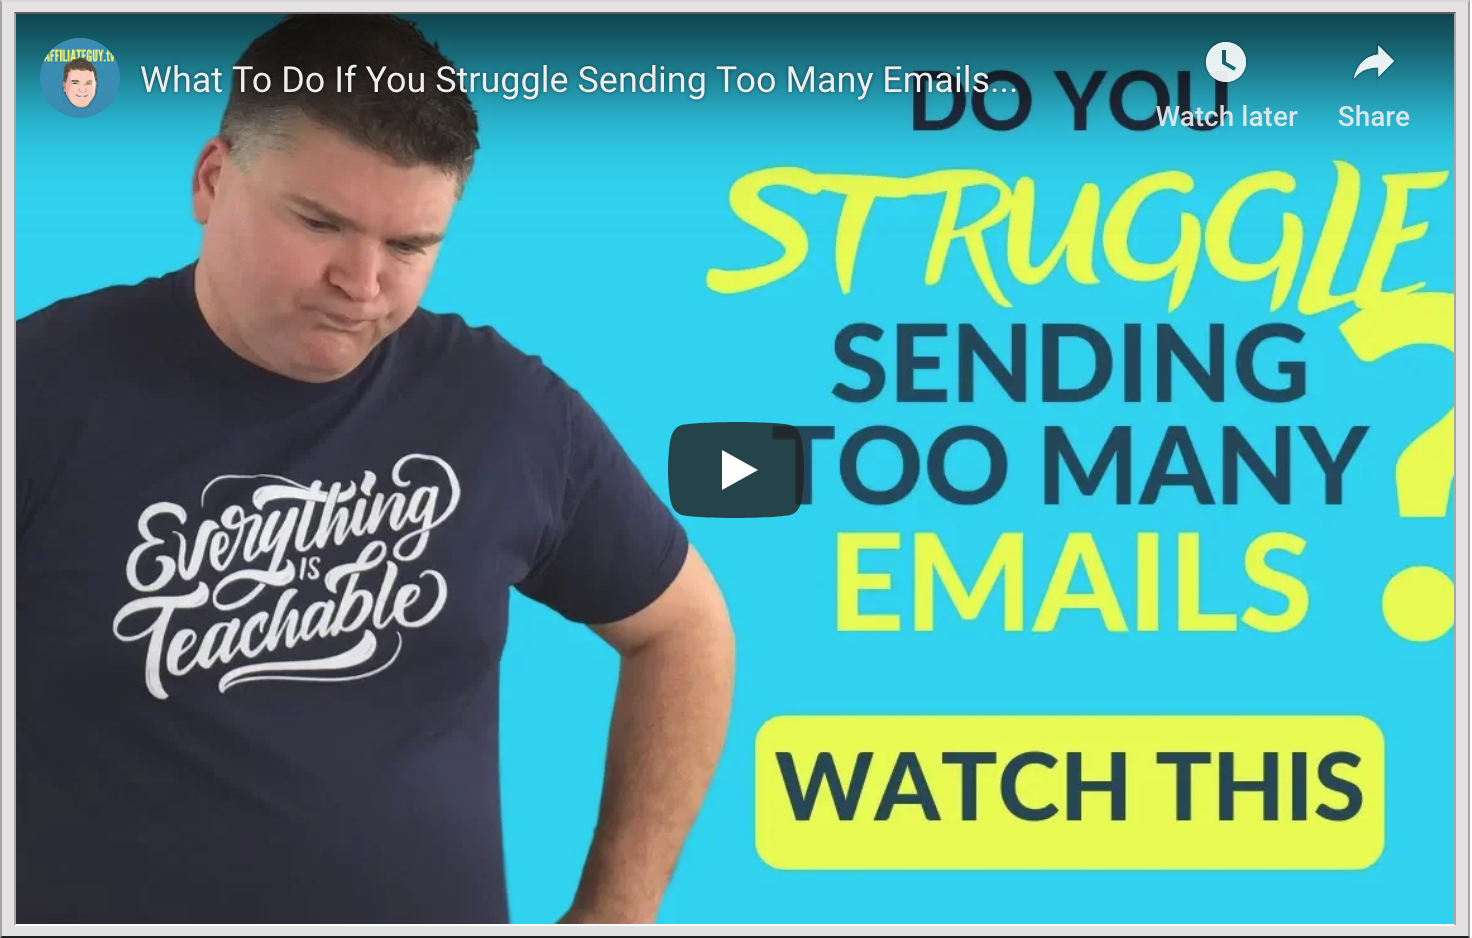 Video - what if you struggle sending too many emails